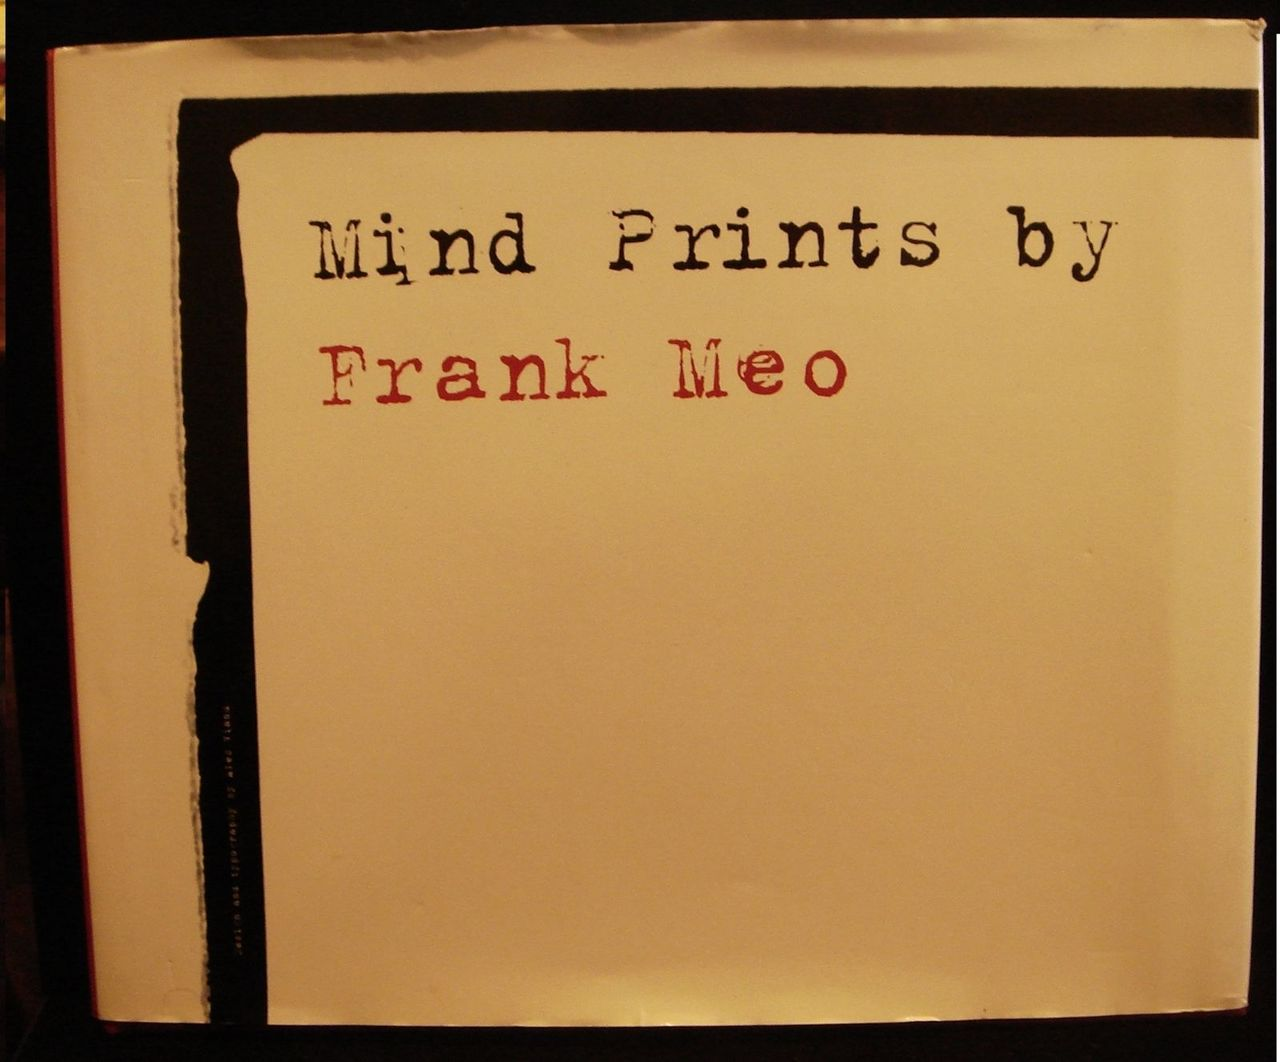 MIND PRINTS, by Frank Meo - 2010 [Signed 1st Ed]